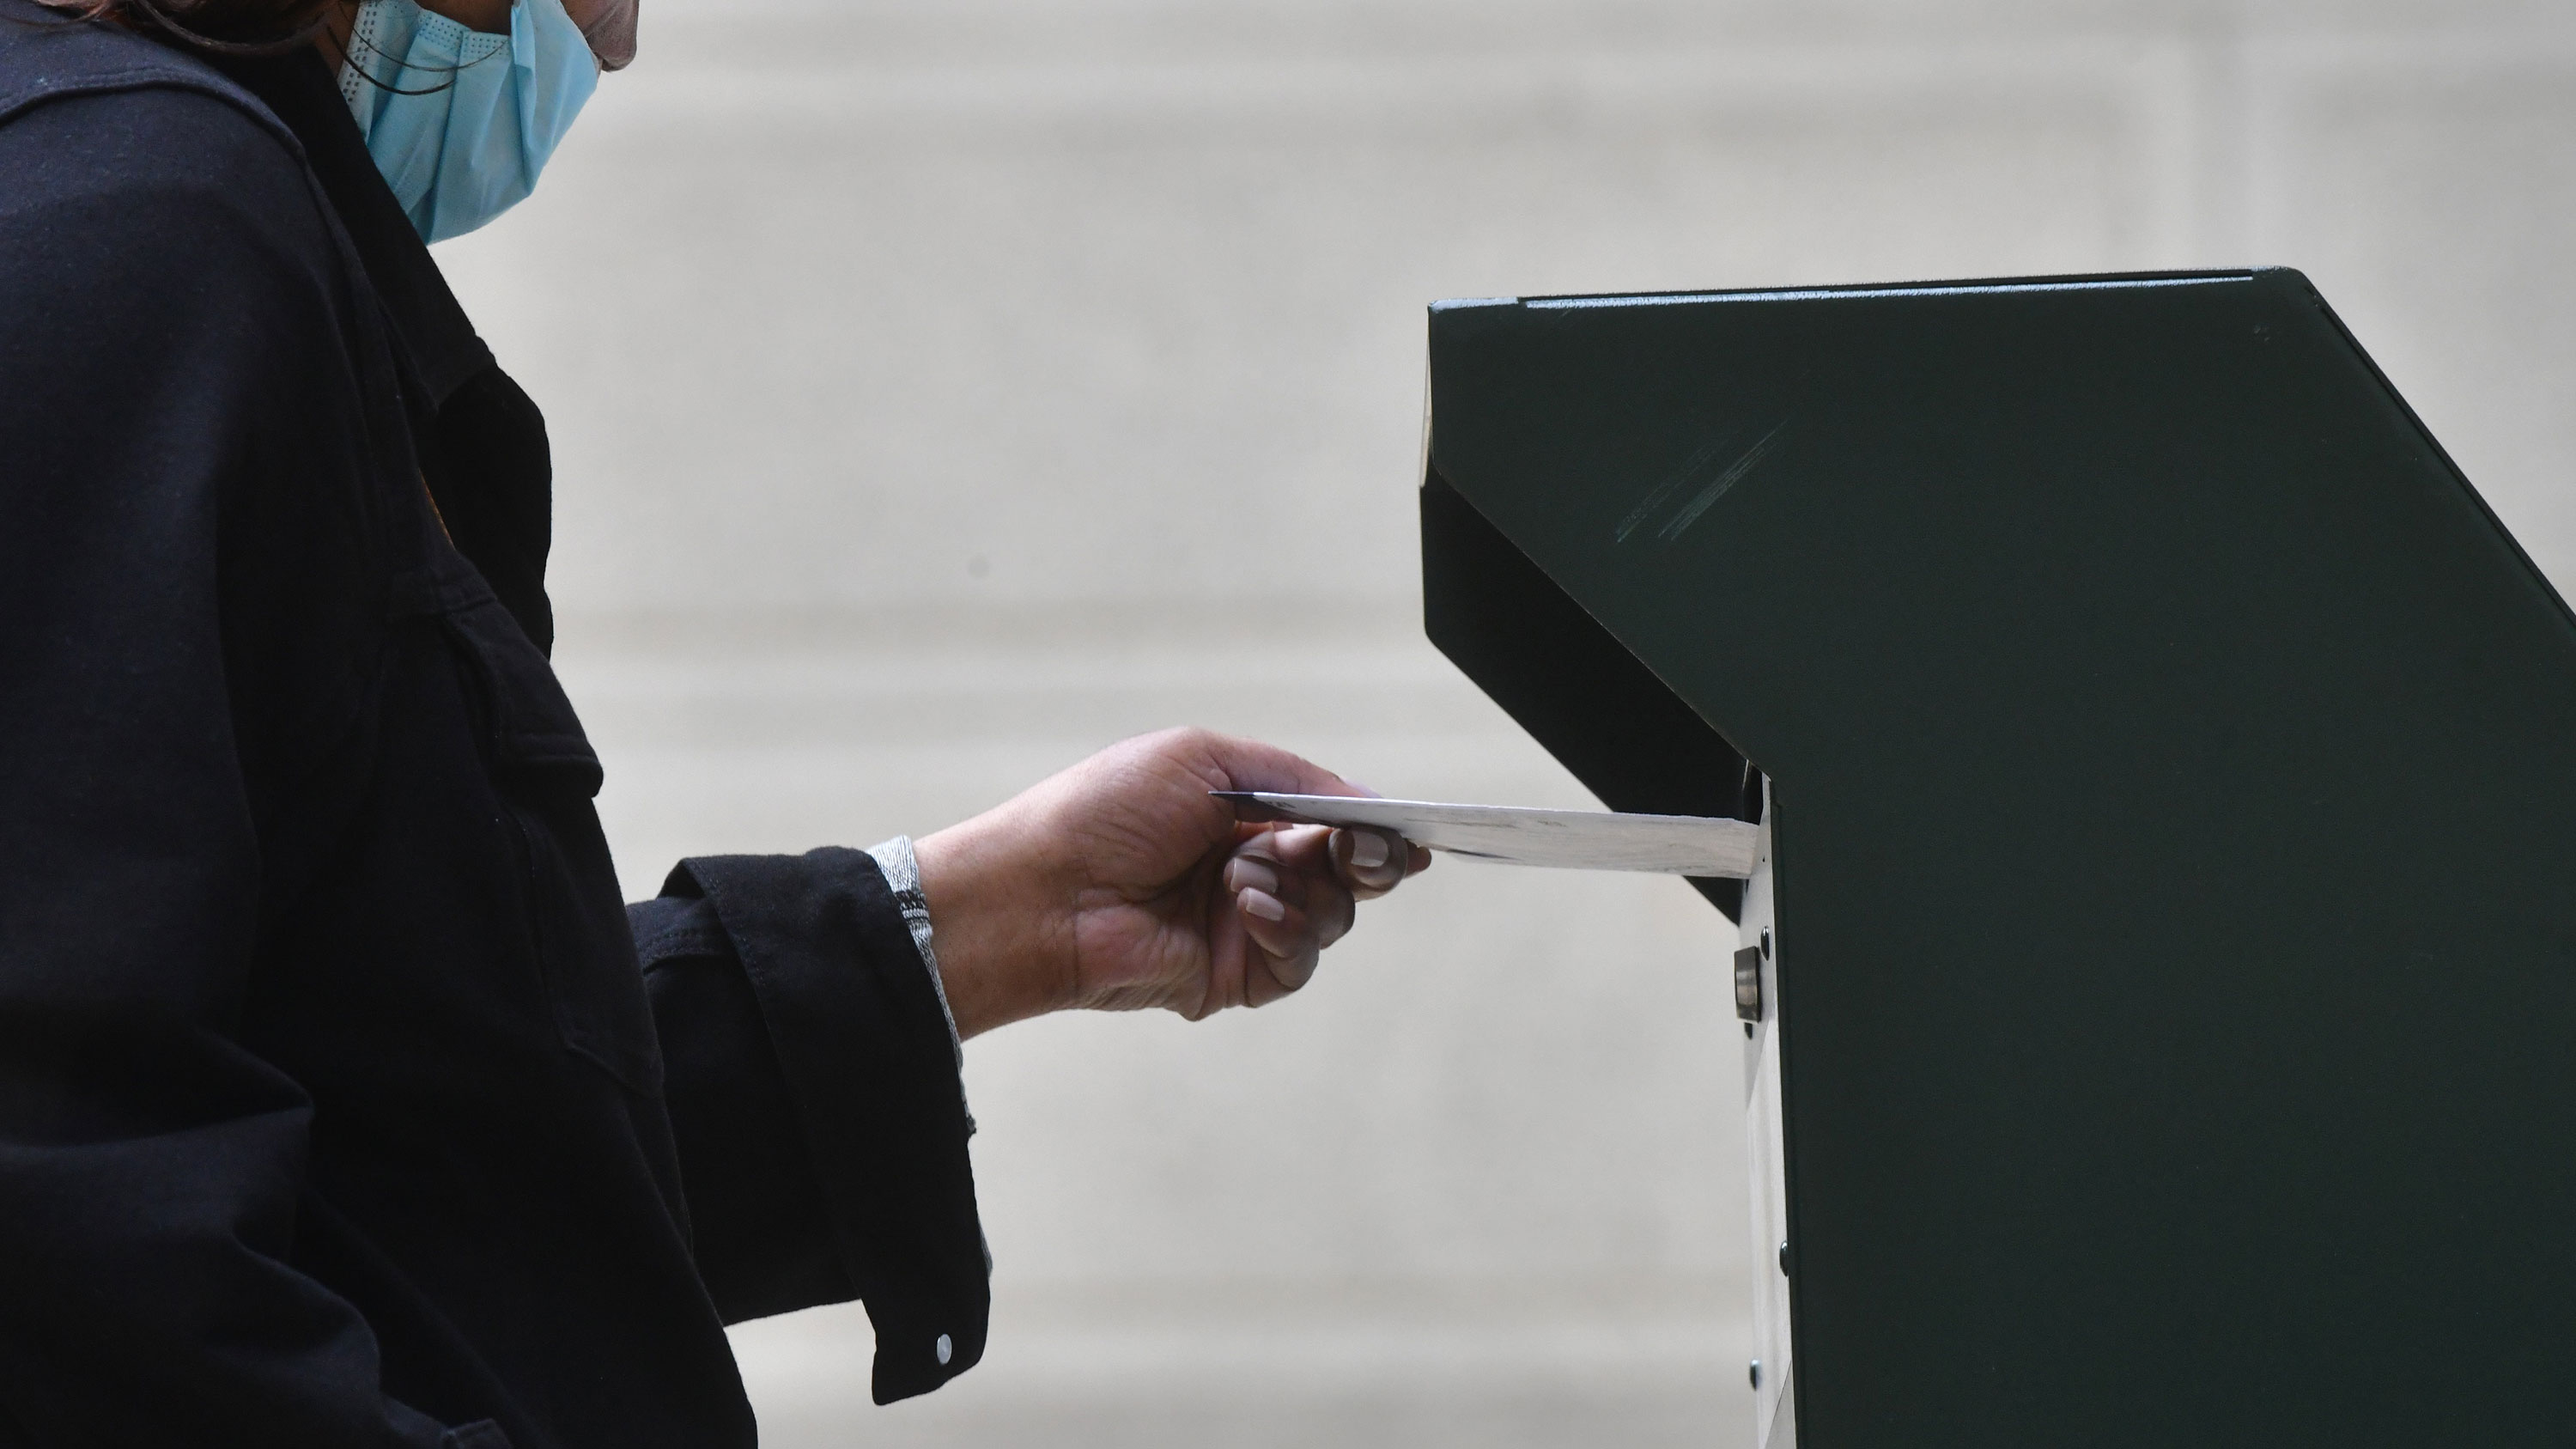 A woman deposits her ballot in an official ballot drop box on October 27 in Philadelphia, Pennsylvania.